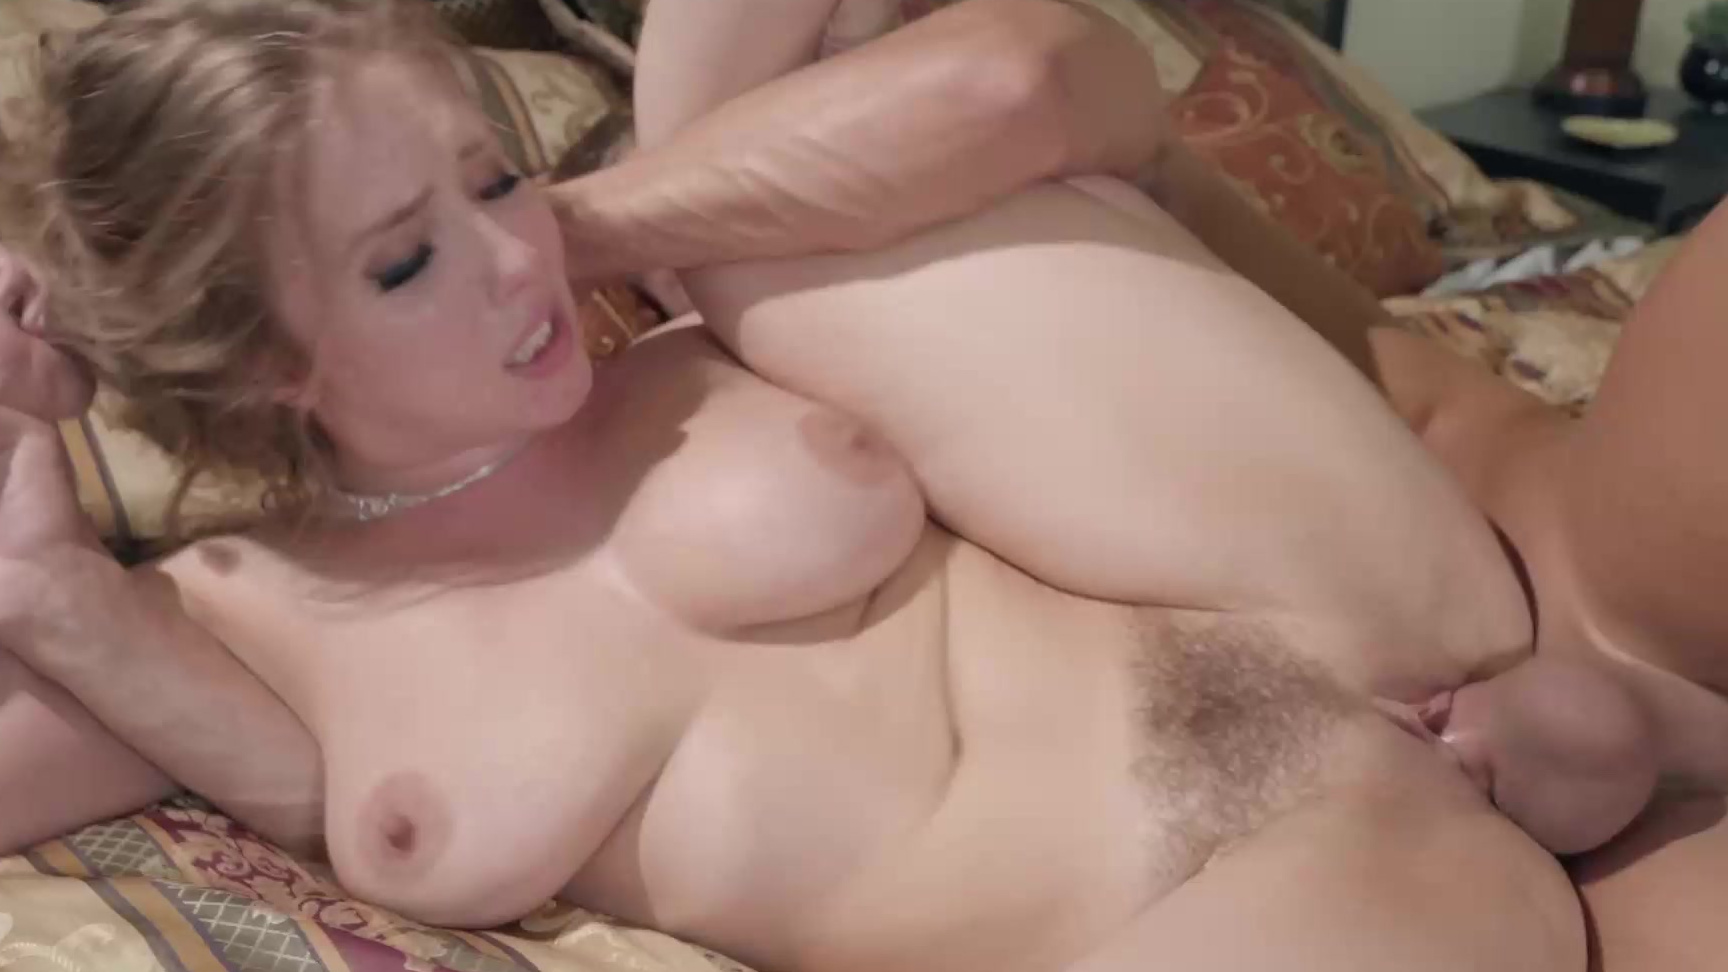 Fuck my wife porn videos